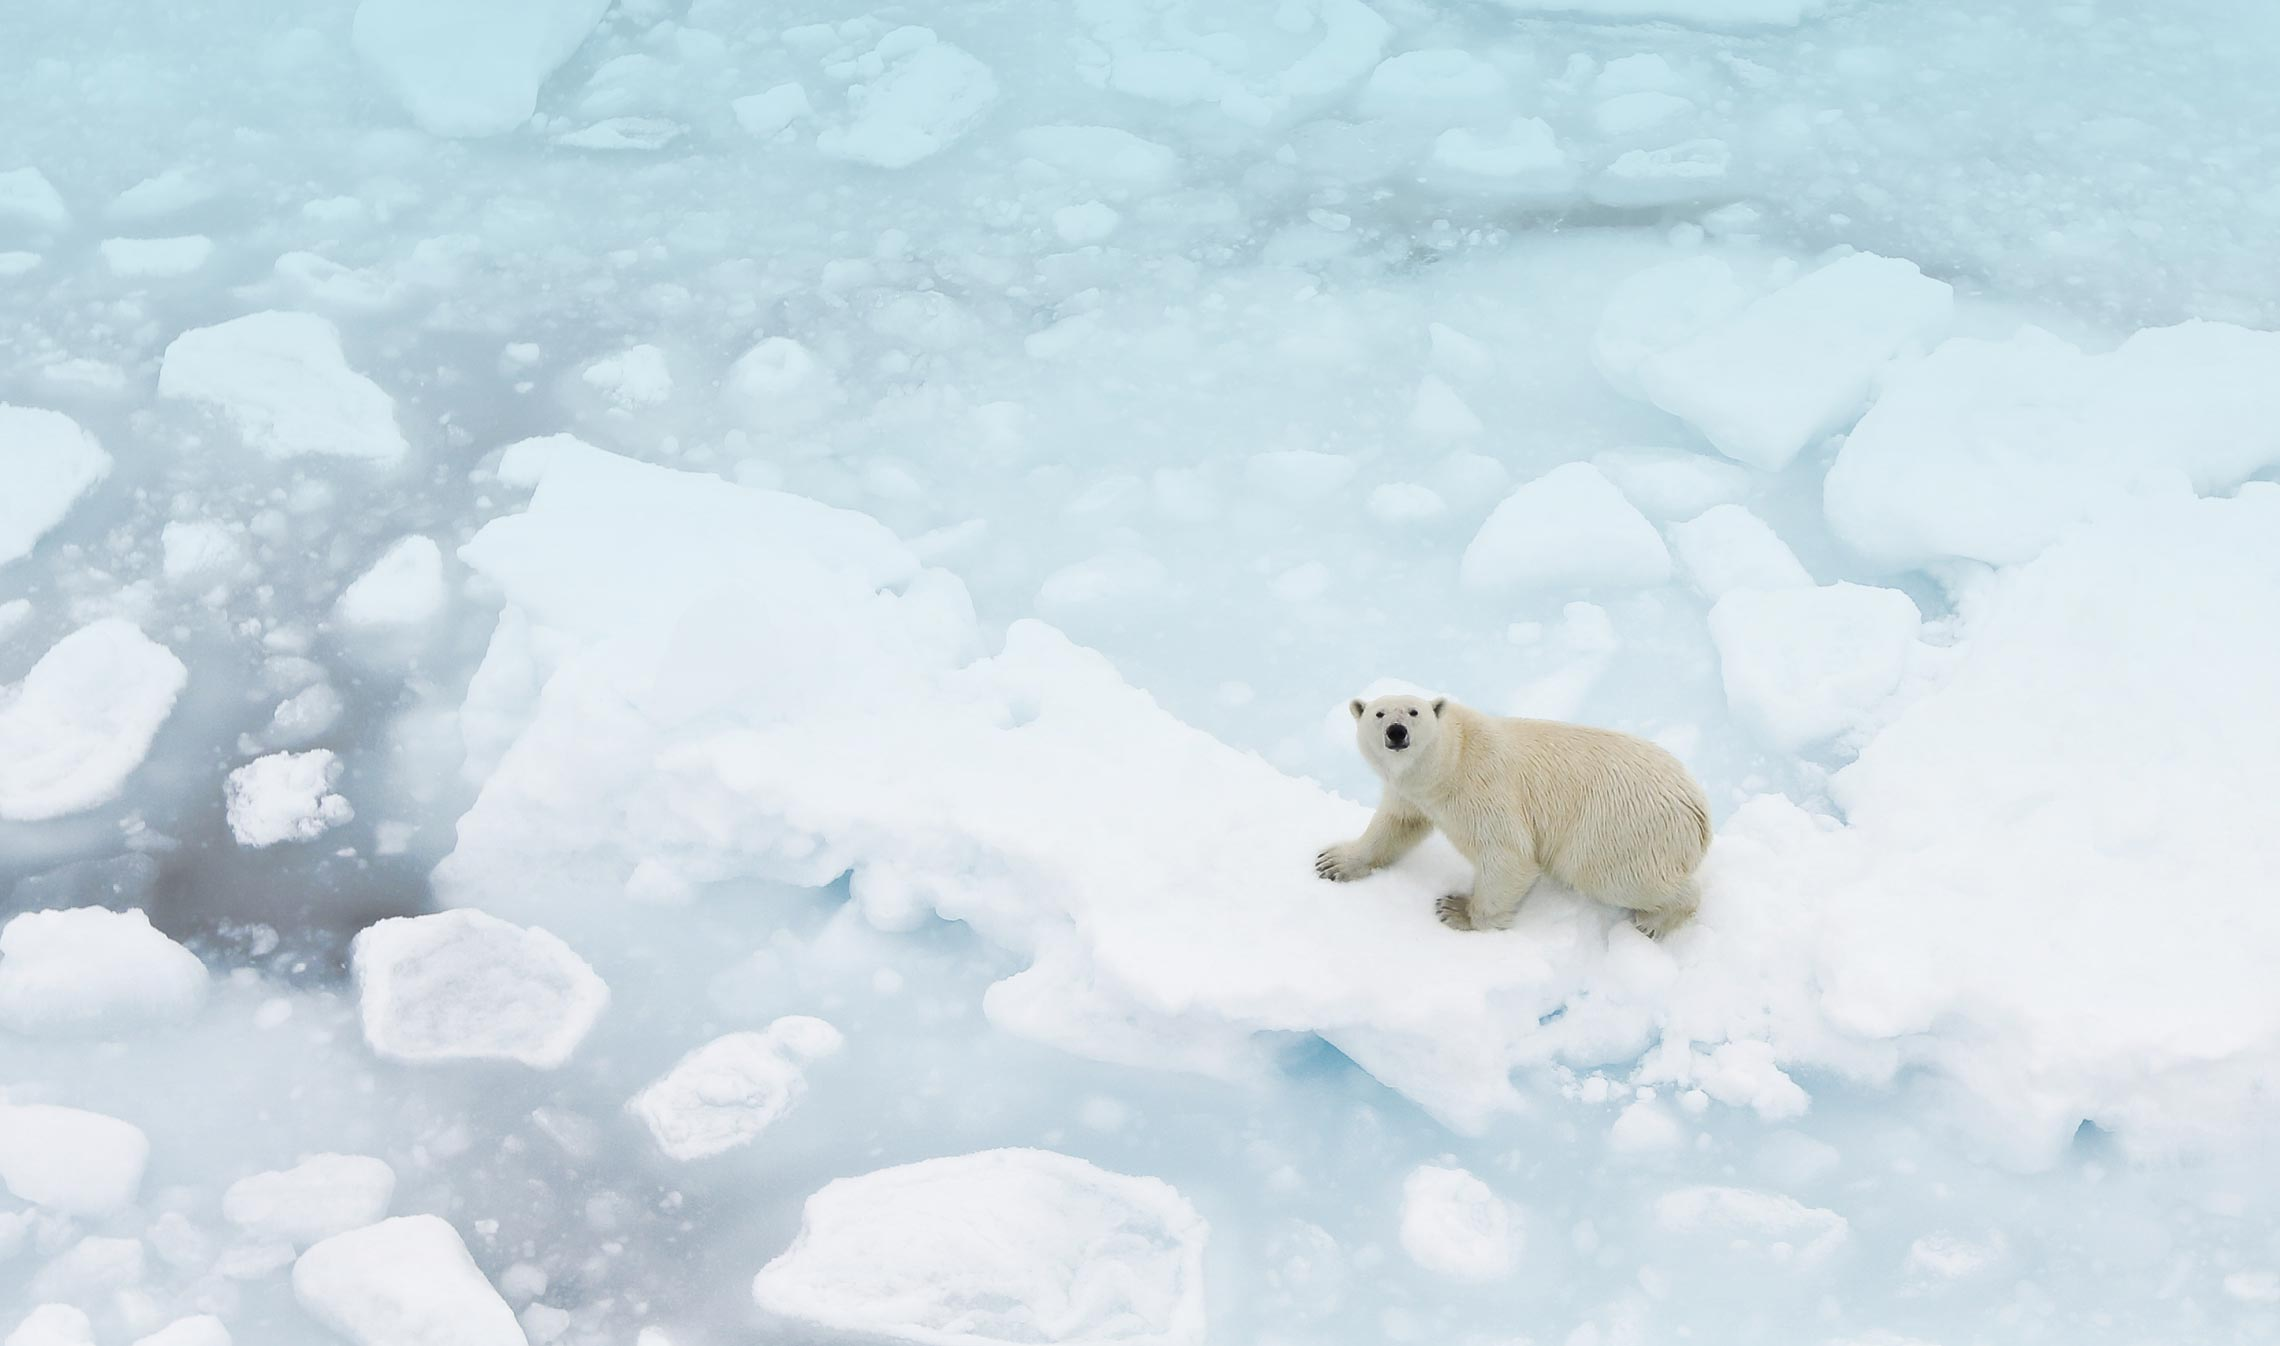 How does Arctic sea ice affect marine life?